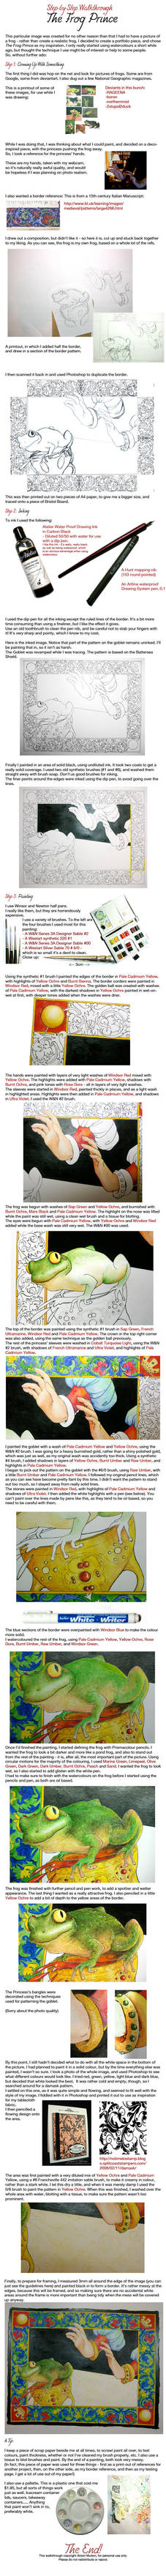 Frog Prince - Walkthrough by Alene